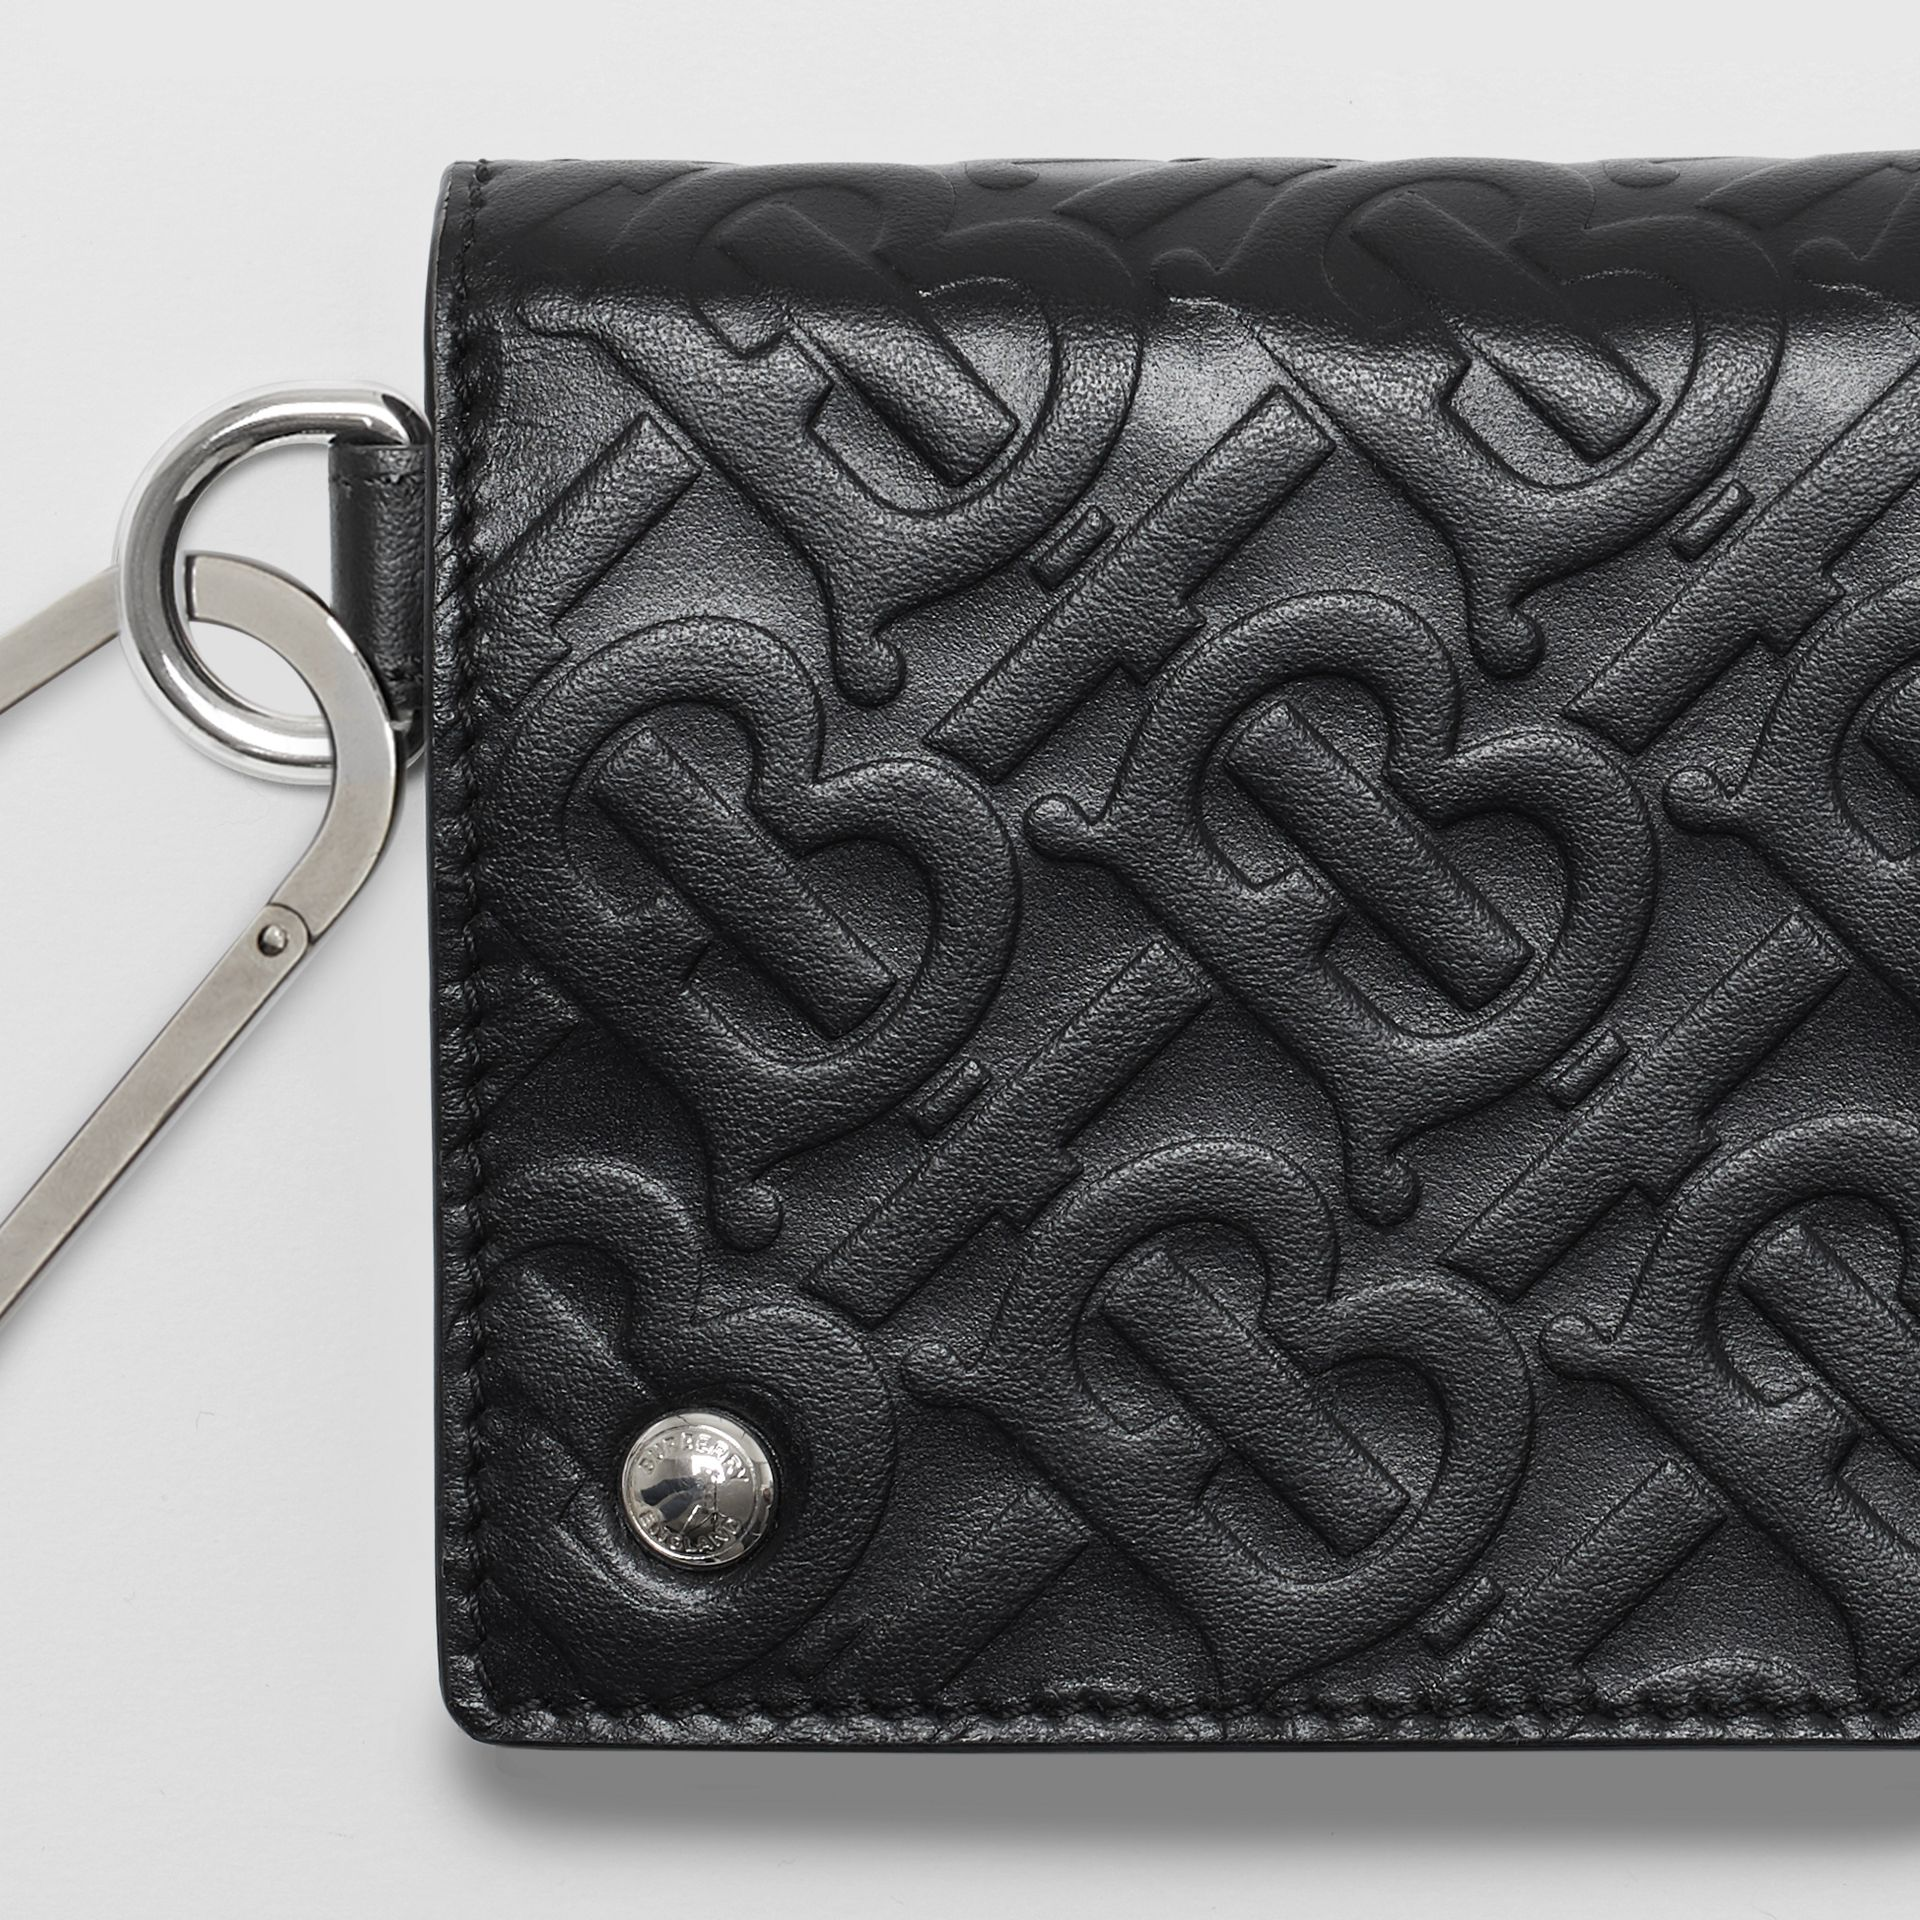 Monogram Embossed Leather Trifold Wallet in Black | Burberry - gallery image 1